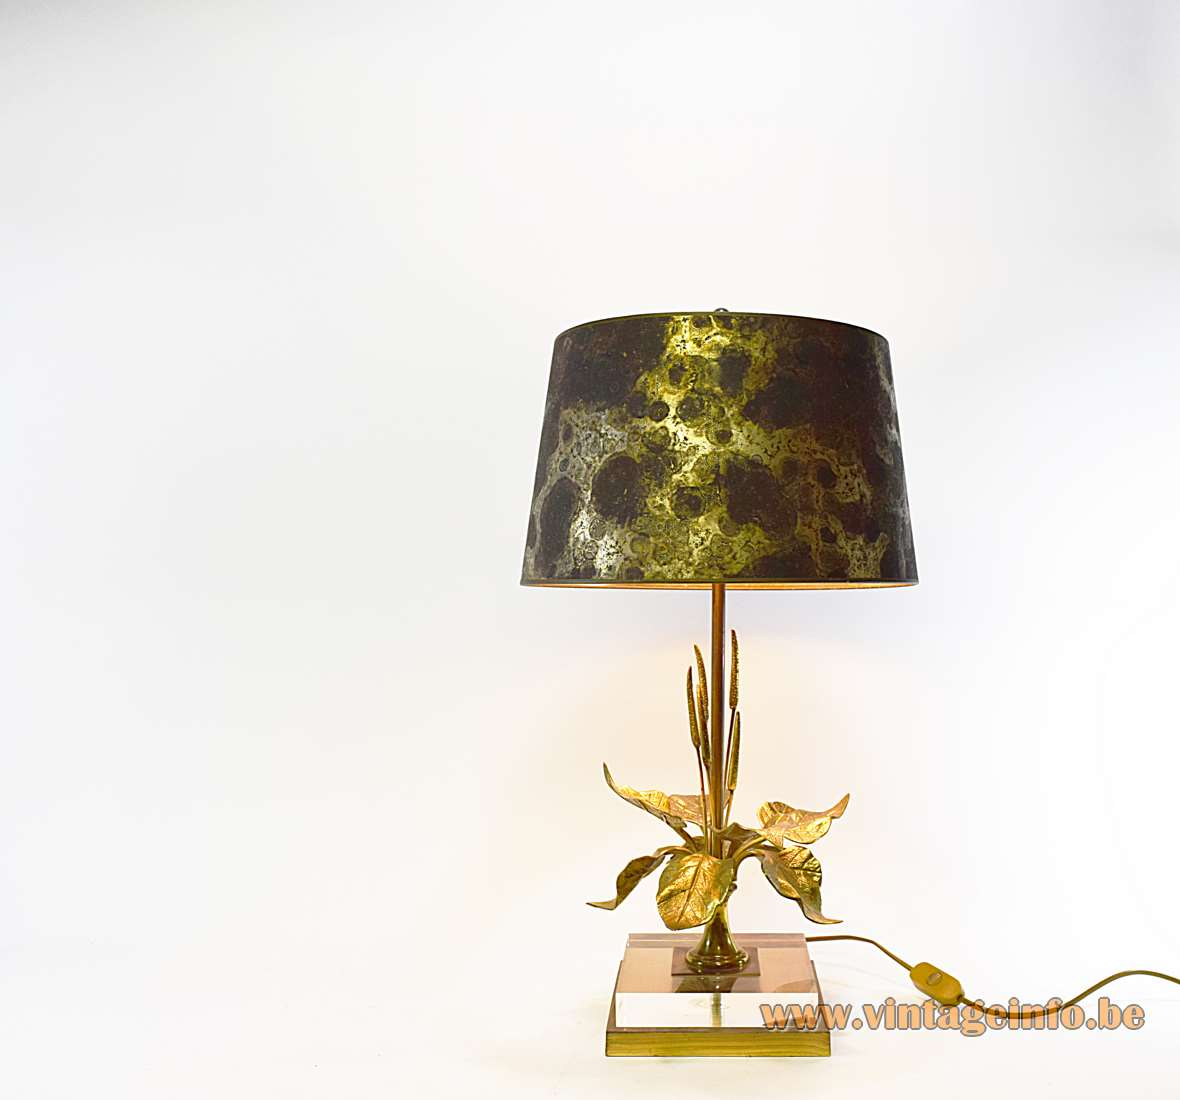 Cattail and lilies table lamp square brass & clear acrylic base bullrush leaves conical lampshade 1970s 1980s